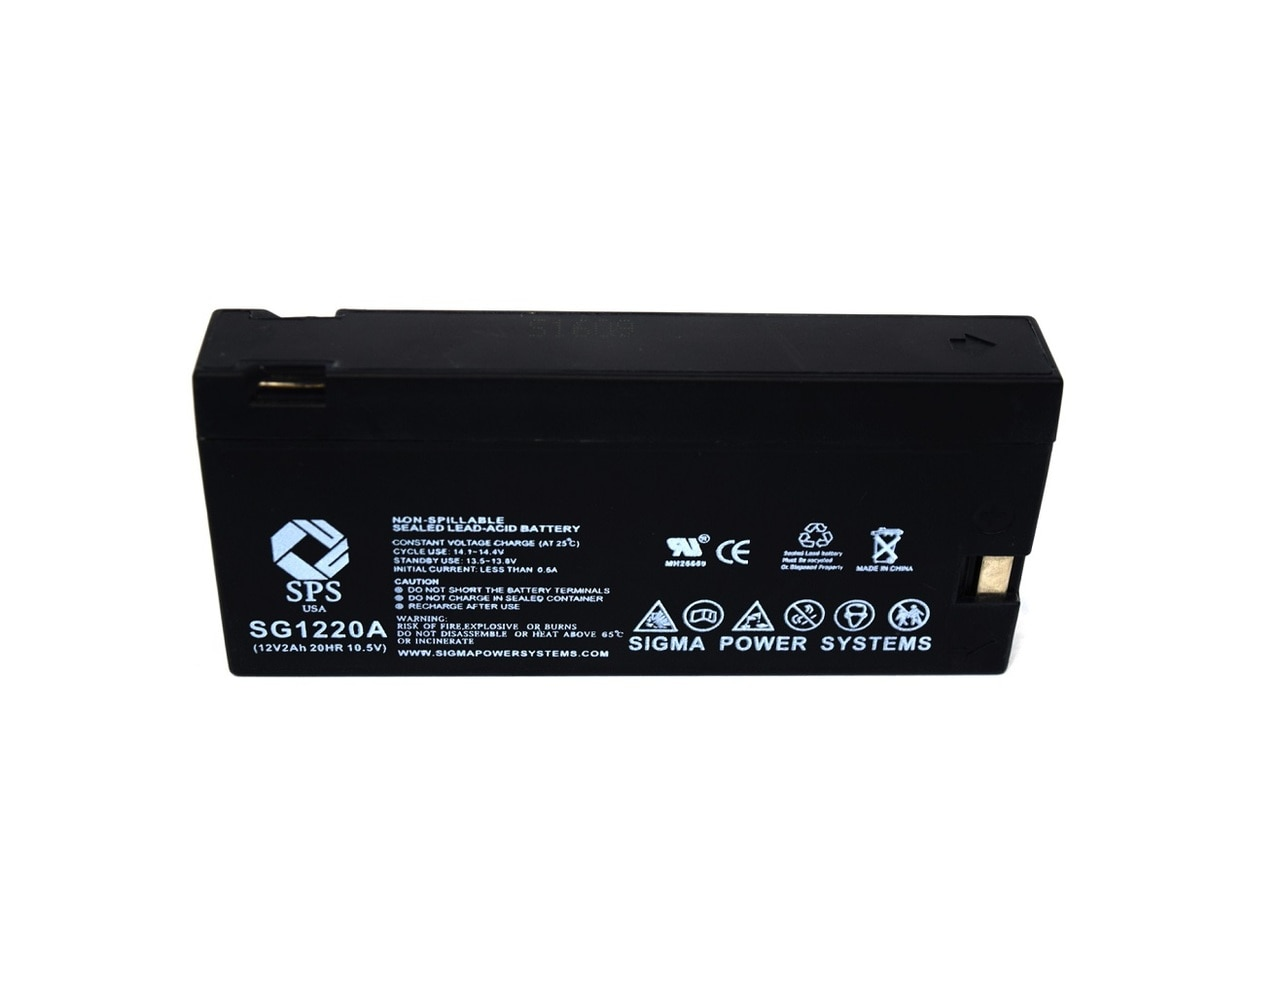 Sps Brand 12v 2ah Replacement Battery For Panasonic Camcorders Omnimovie Vhs Afx8 Camcorder Battery 1 Pack Walmart Com Walmart Com